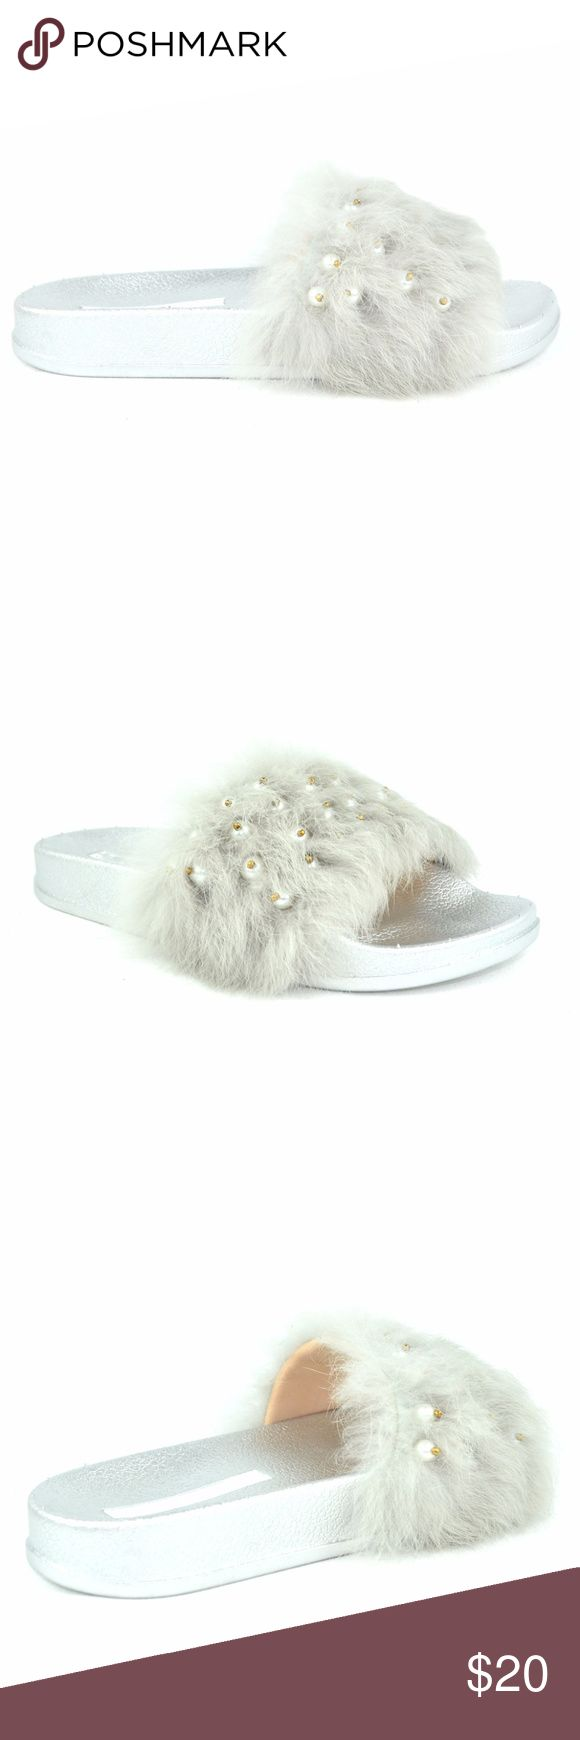 "Women's Silver Flip Flop Flat With Pearls on Furry Synthetic Imported Rubber sole Platform measures approximately 1.00"" Open Toe Pearls on Furry Women's Fashion Flip Flop Approx 1.5 Heel Height Chase & Chloe Furry-5 Chase & Chloe Shoes Flats & Loafers"